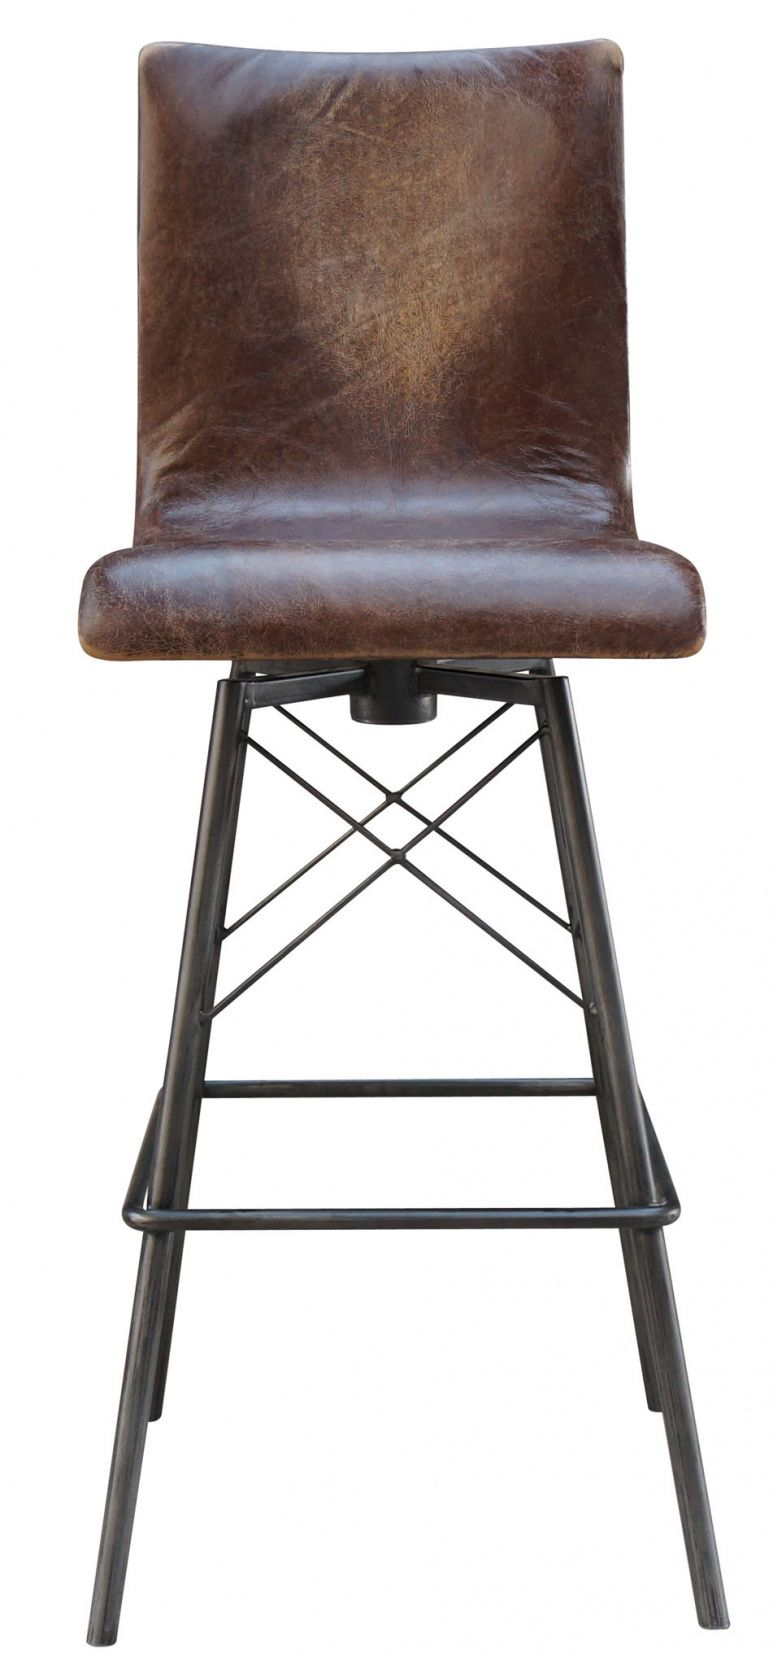 99 leather swivel bar stools with back modern european furniture check more at http